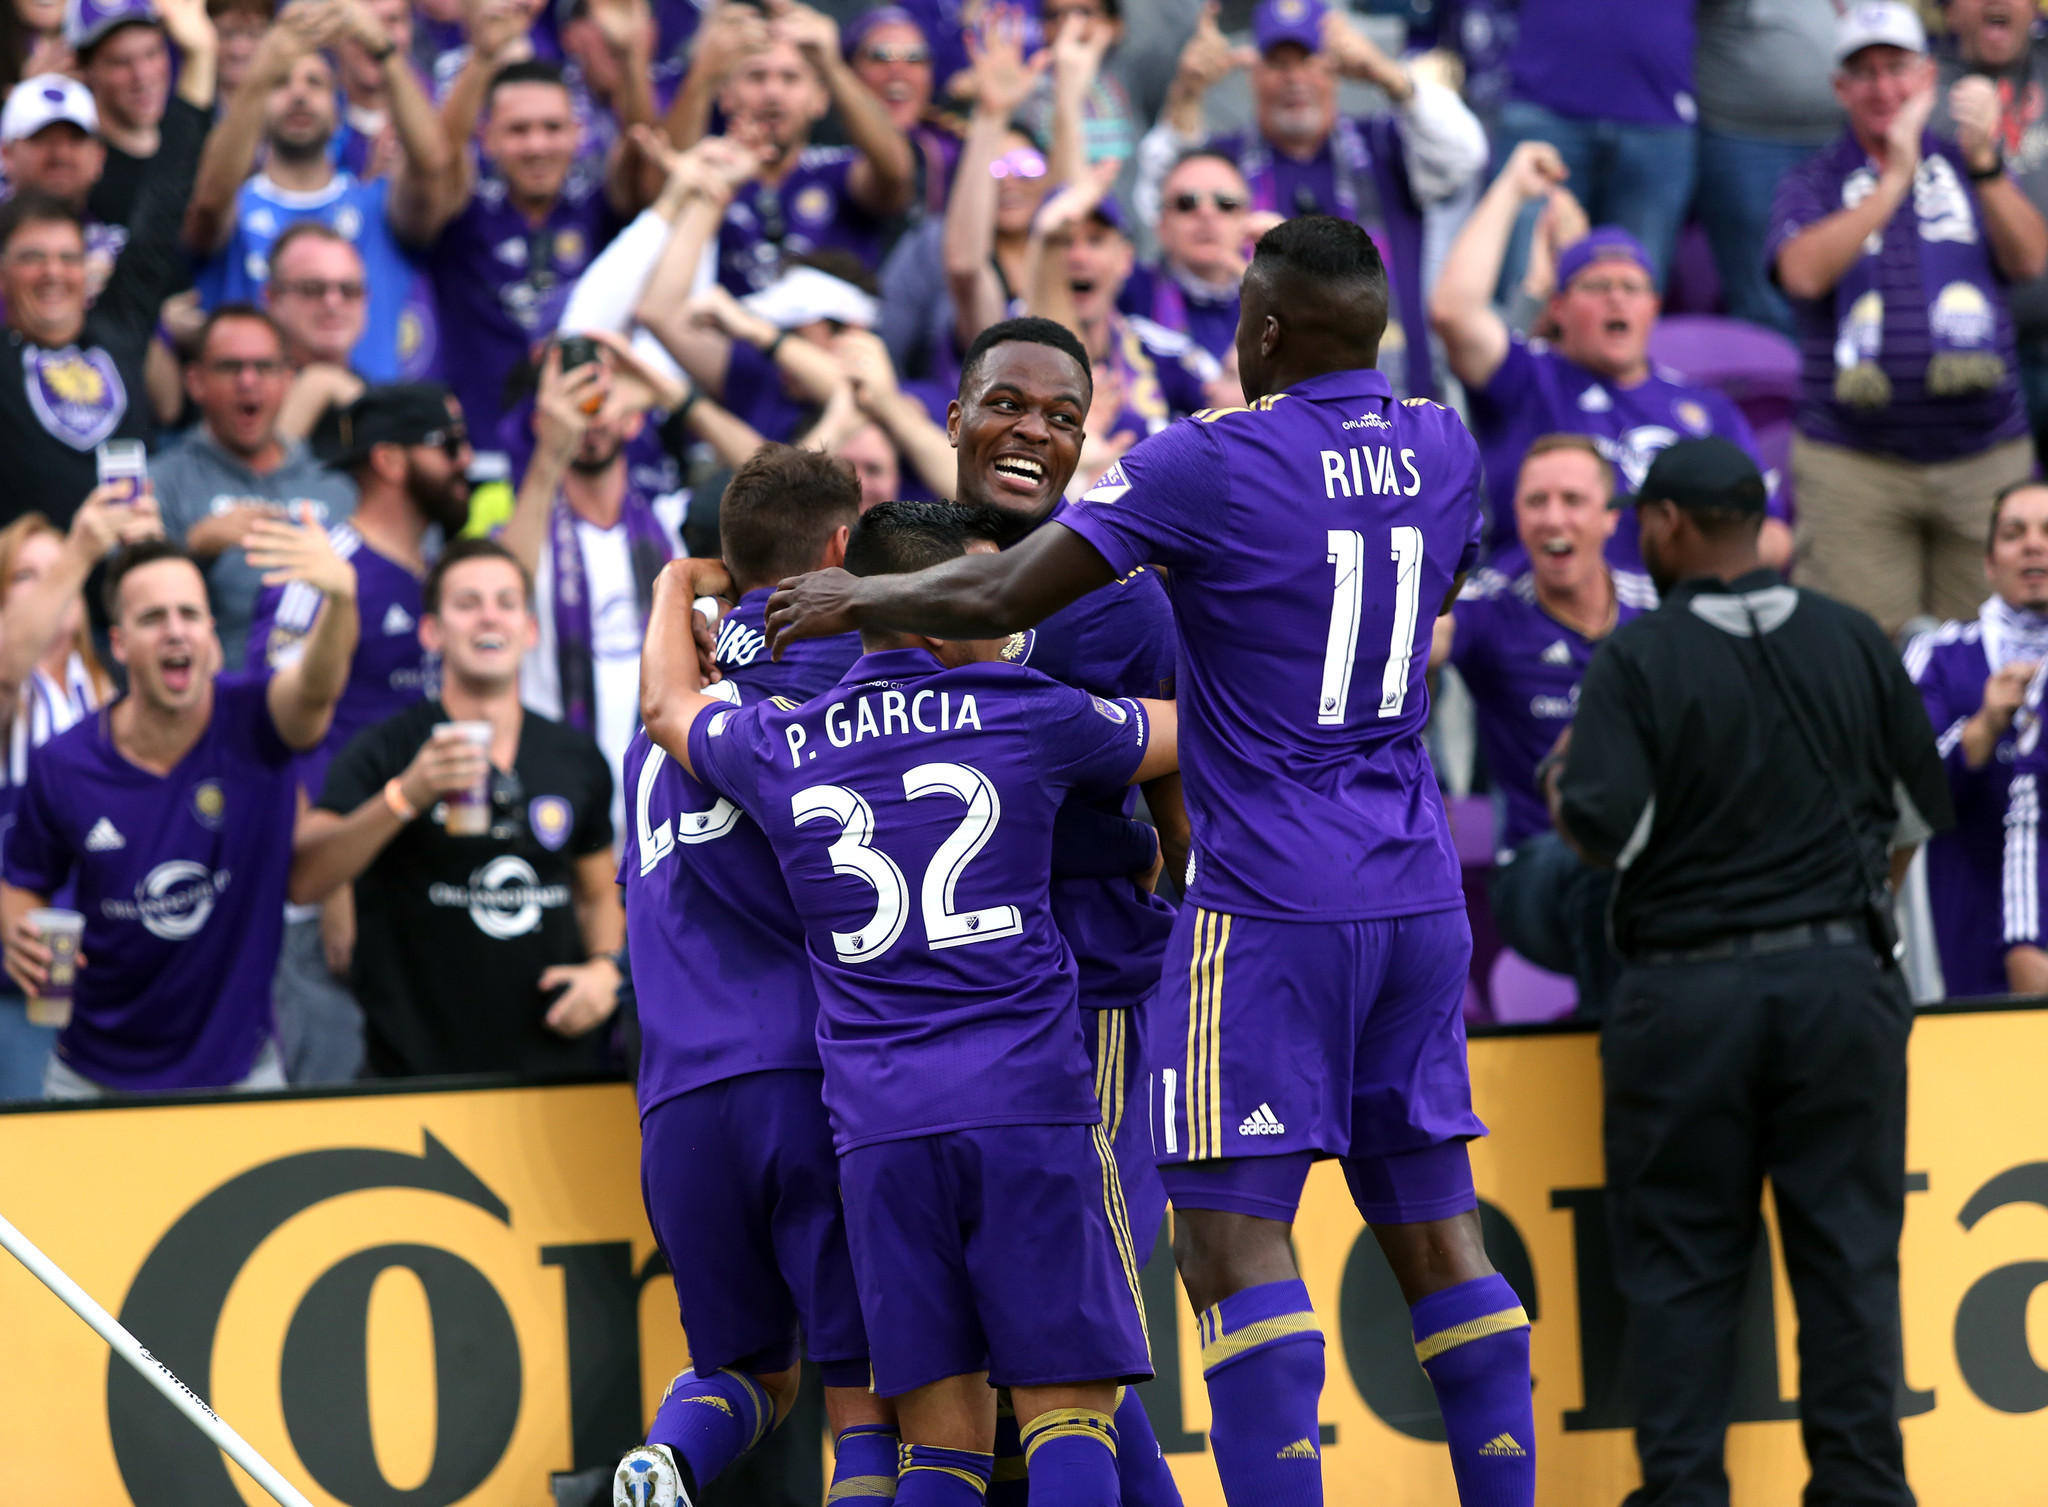 ORLANDO (FNN SPORTS) - Cyle Larin's early goal and Joe Bendik's goal protection secure Orlando City's home opener victory in their new Orlando City Stadium Sunday. Photo: Orlando Sentinel.